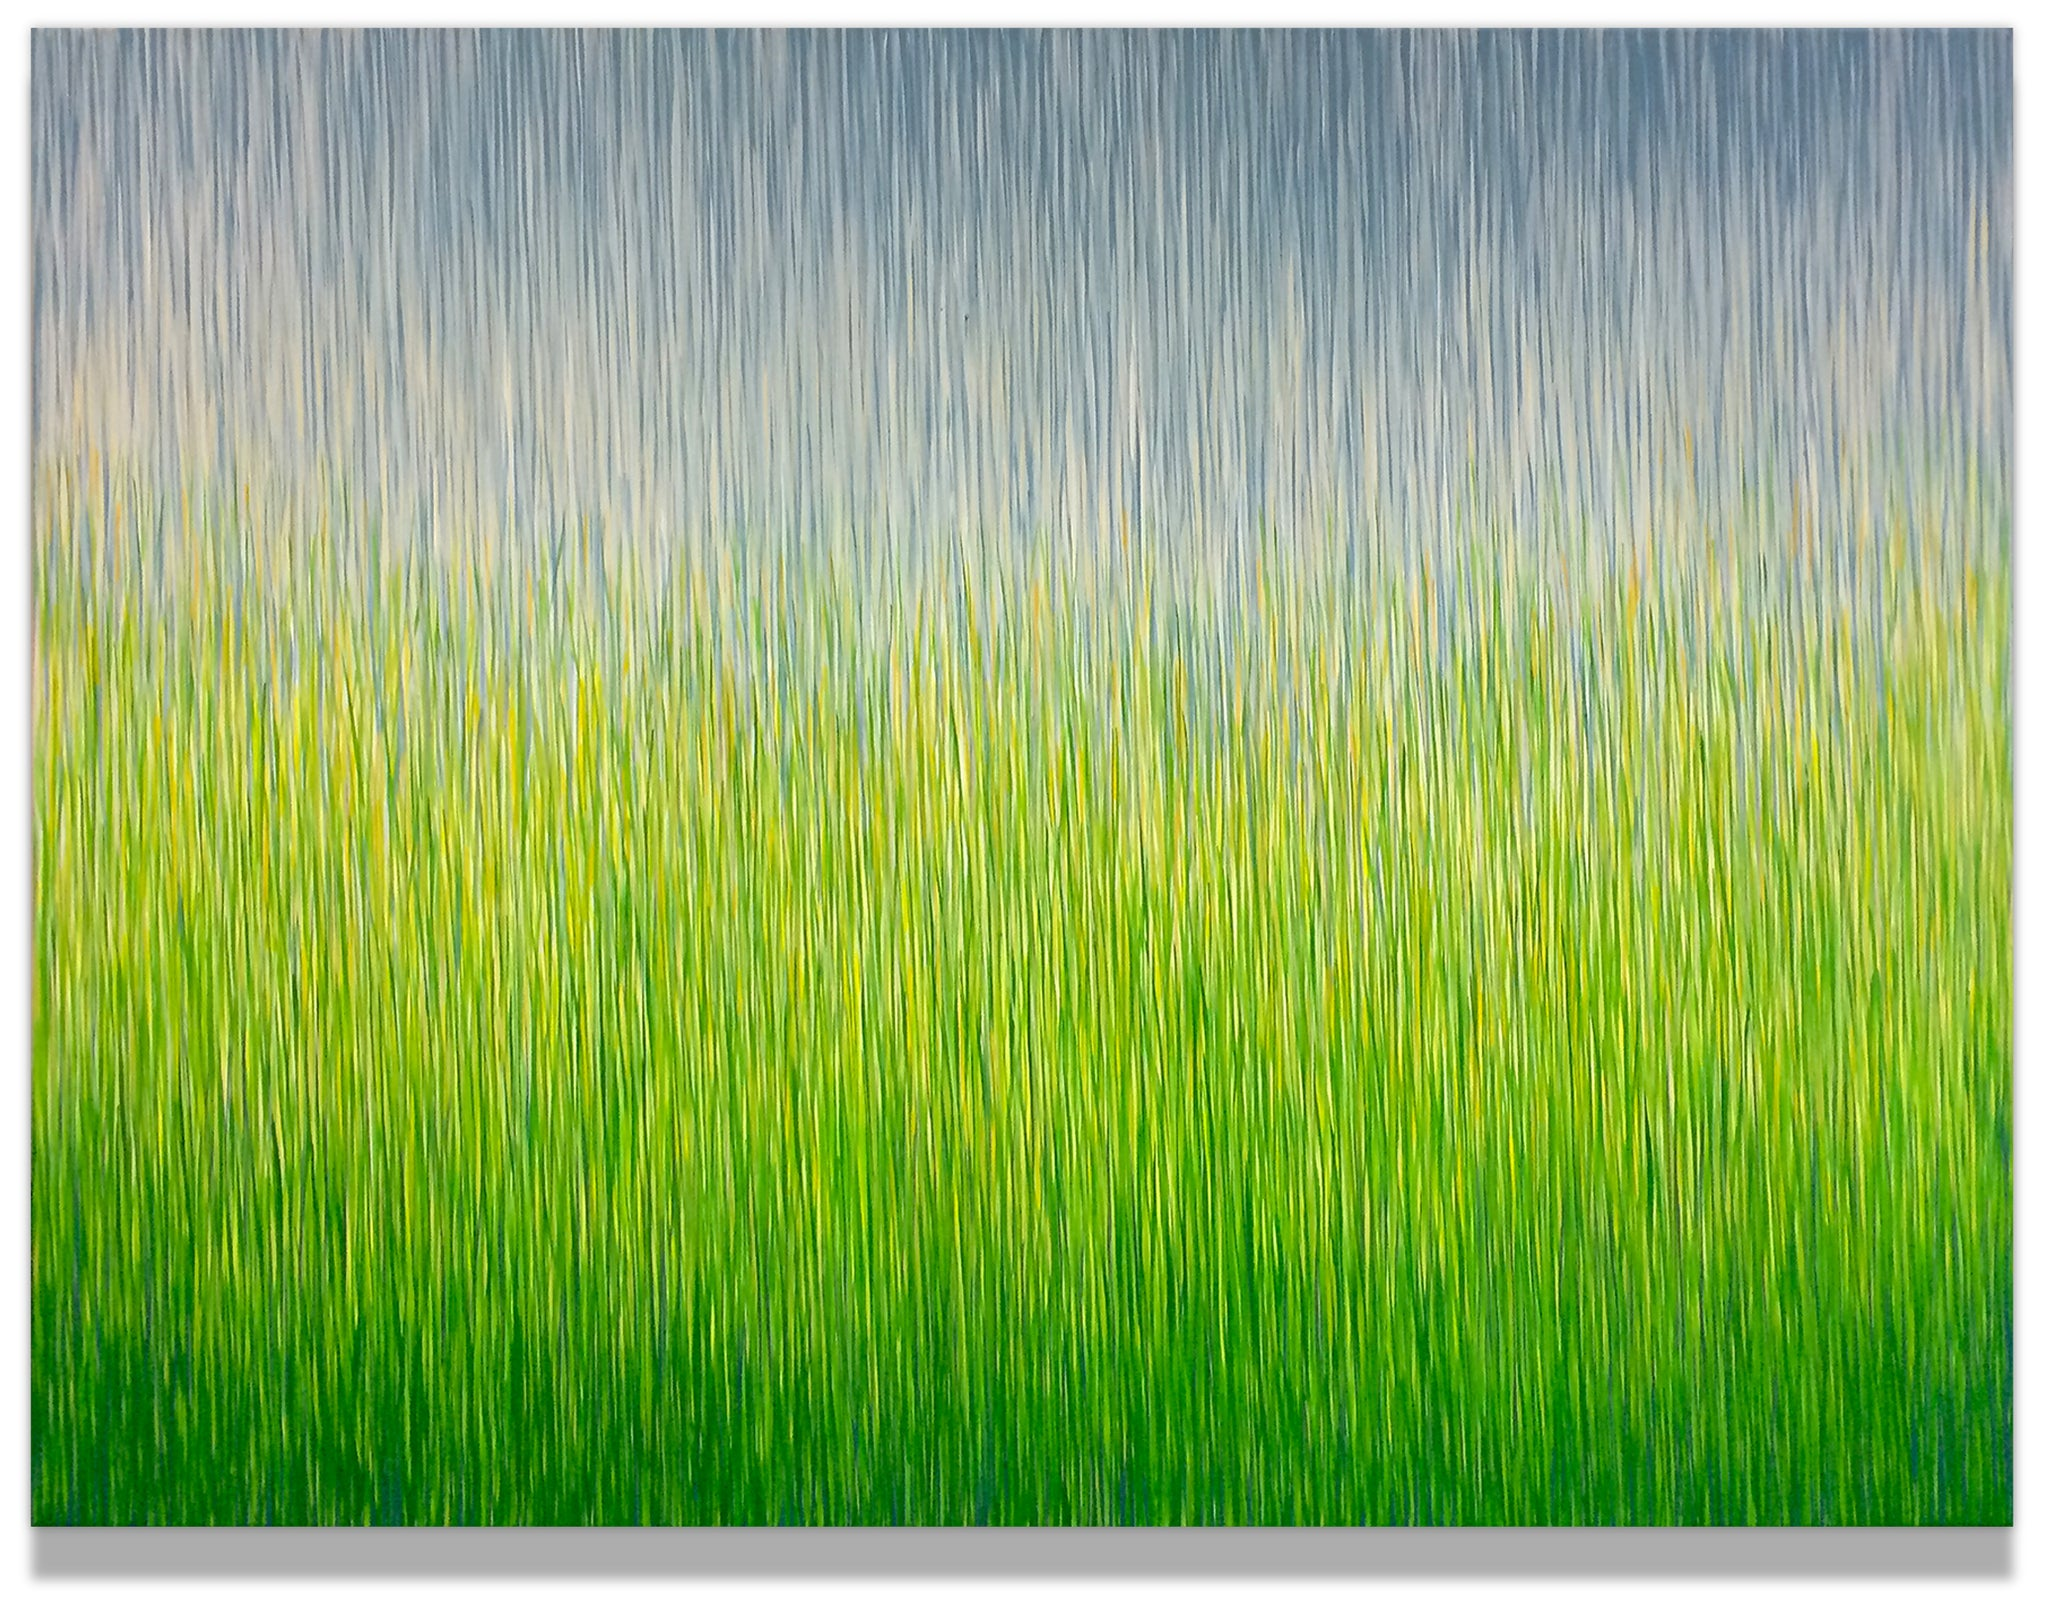 Grasslands Rain - George Hall